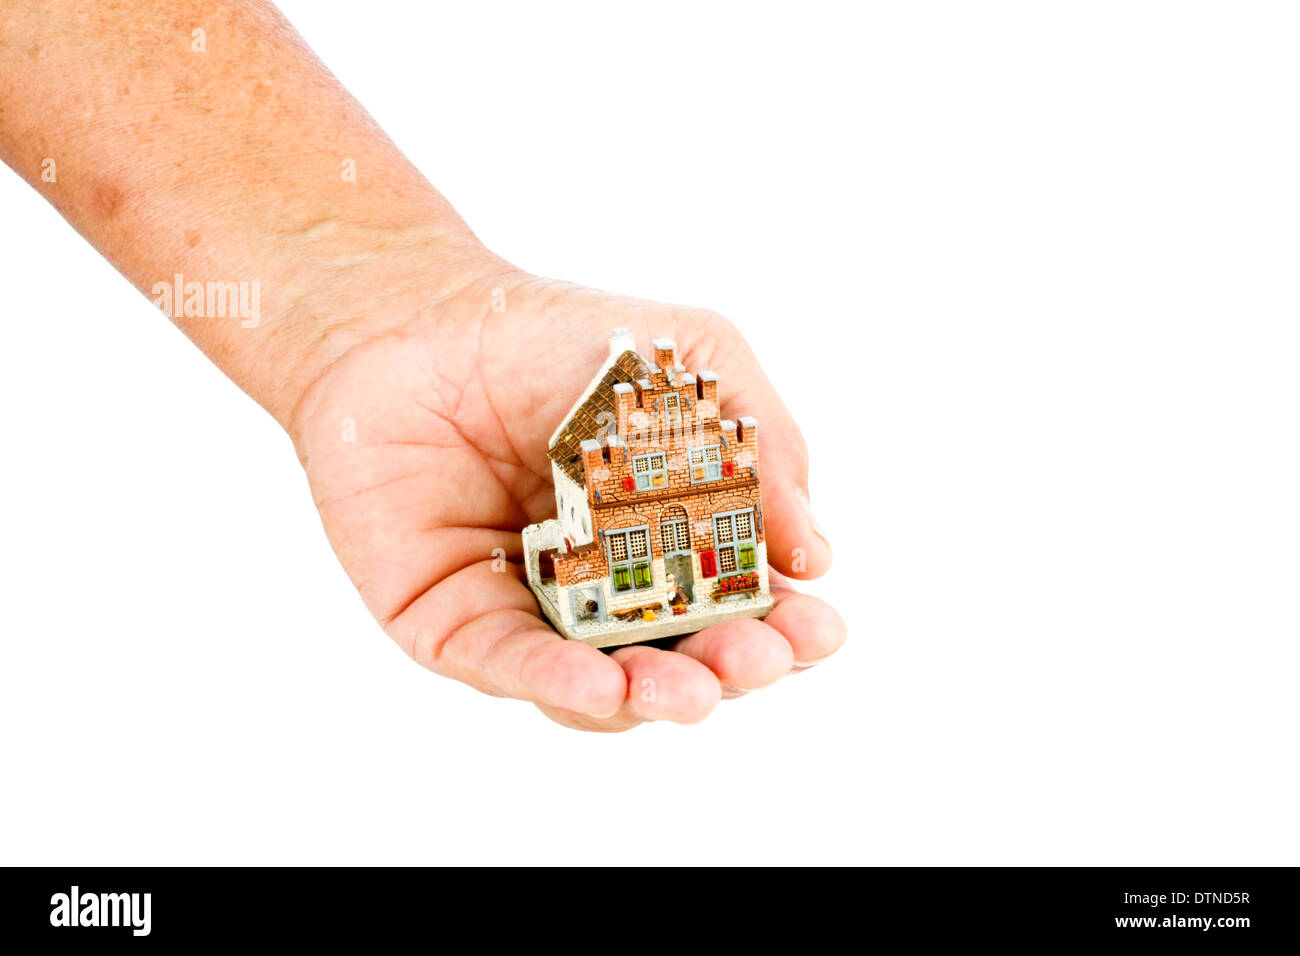 Selling or buying a house - concept for the real estate market - Stock Image